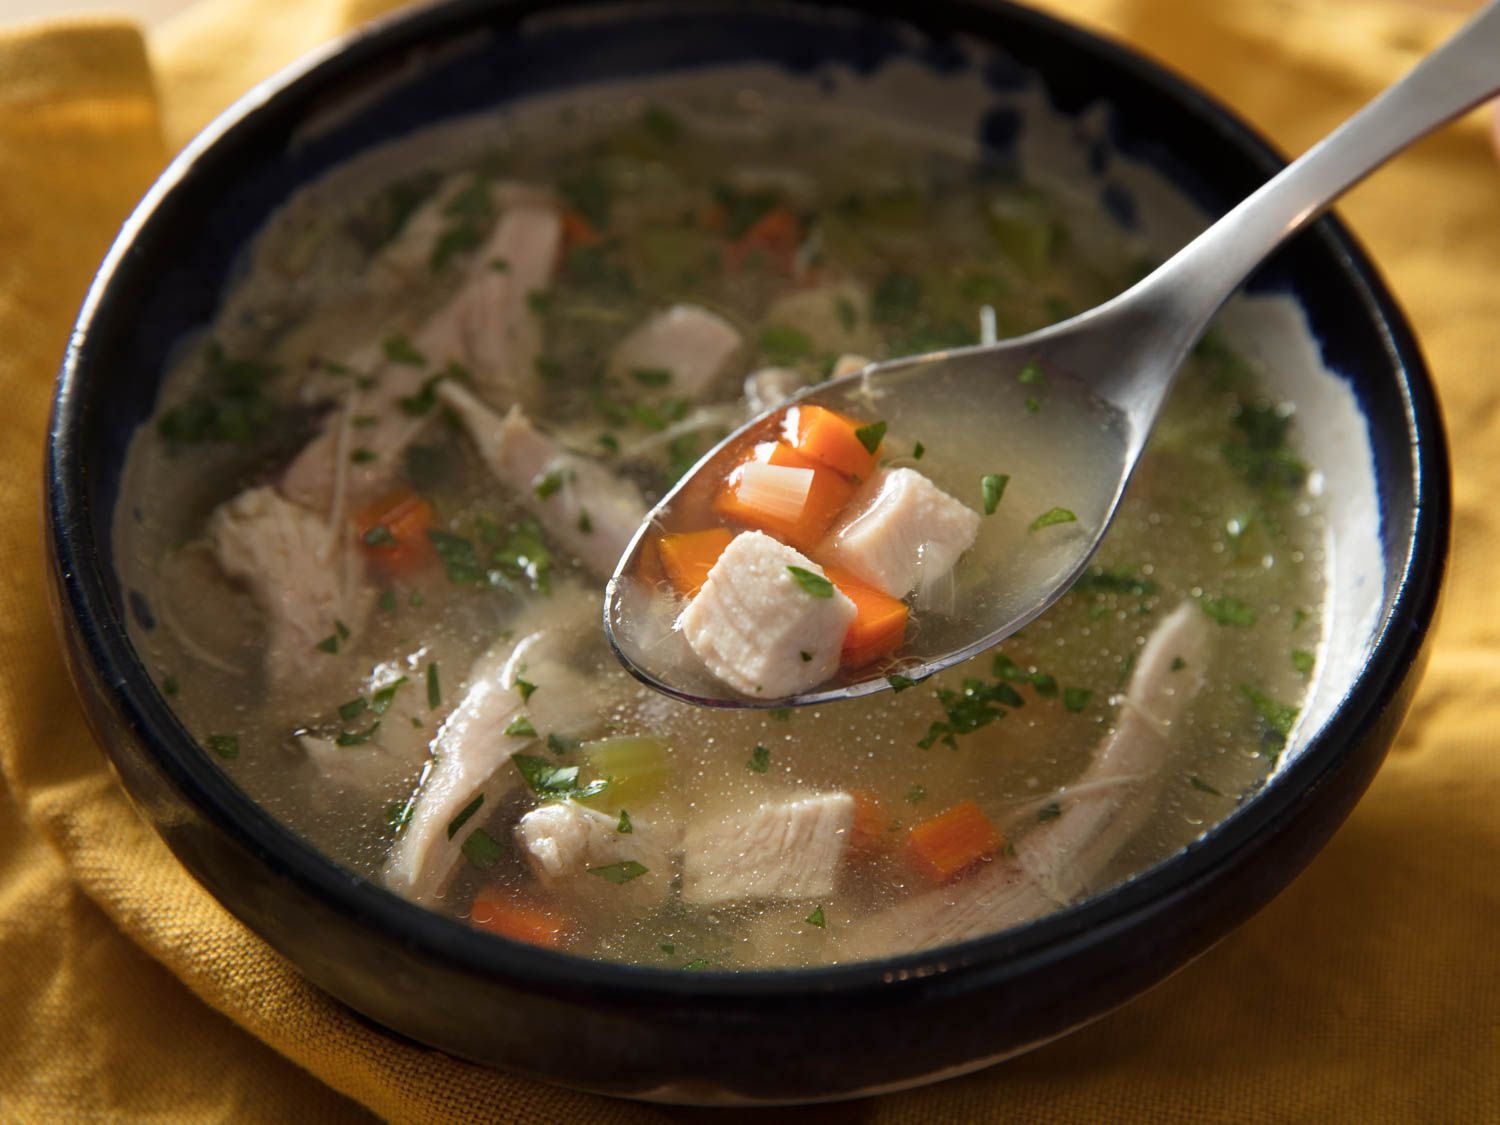 Close-up of a spoonful of chicken soup, with cubed chicken, carrots, and herbs